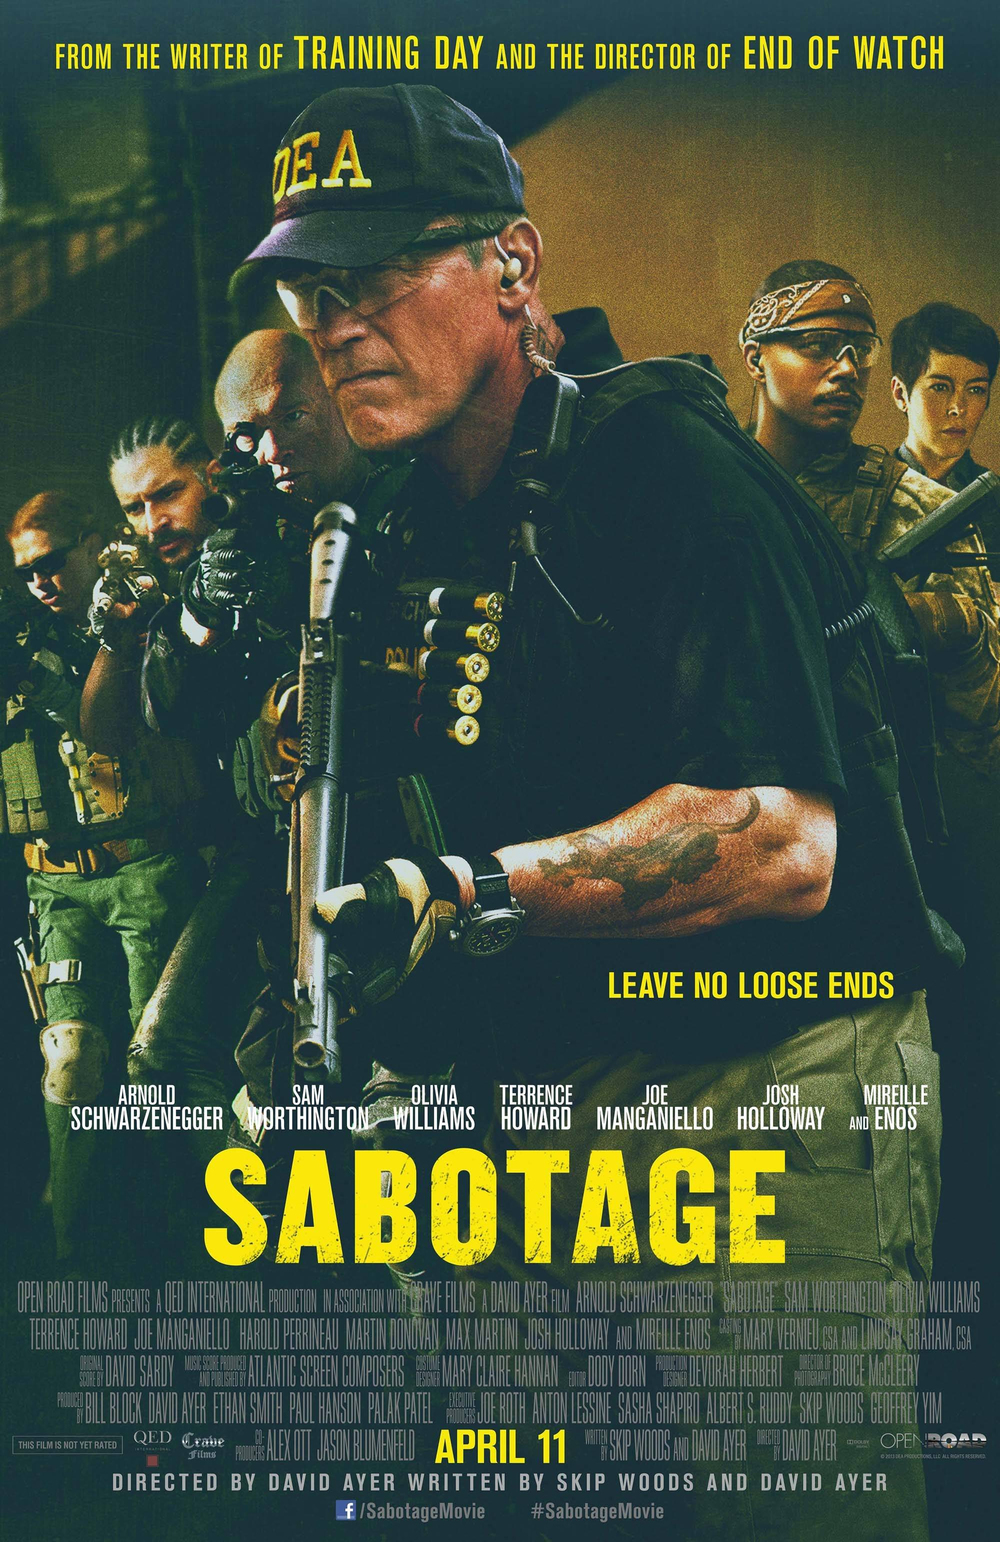 action-packed-trailer-for-schwarzeneggers-sabotage.jpg